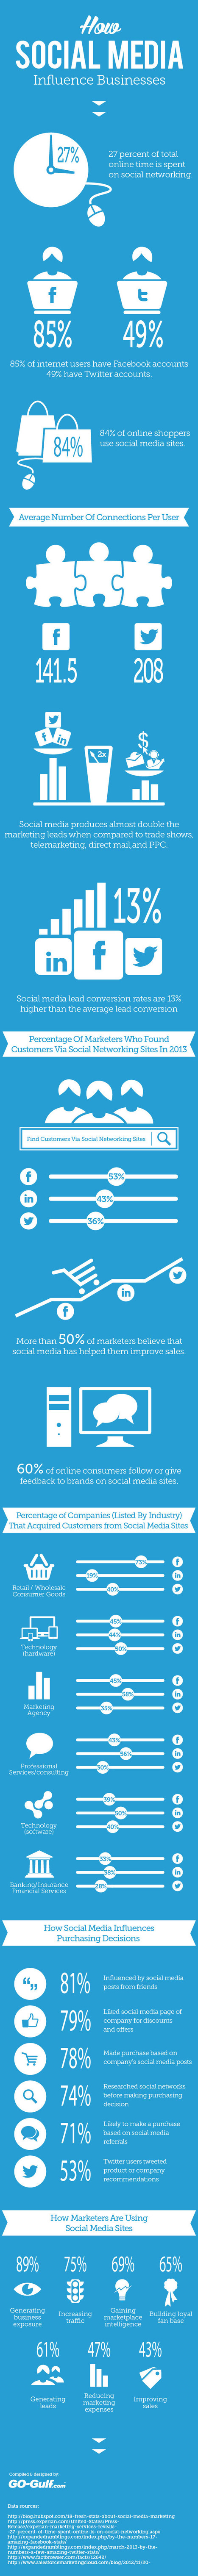 How Social Media Influence Businesses | Great #Infographic from Visual.ly | SocialMedia_me | Scoop.it